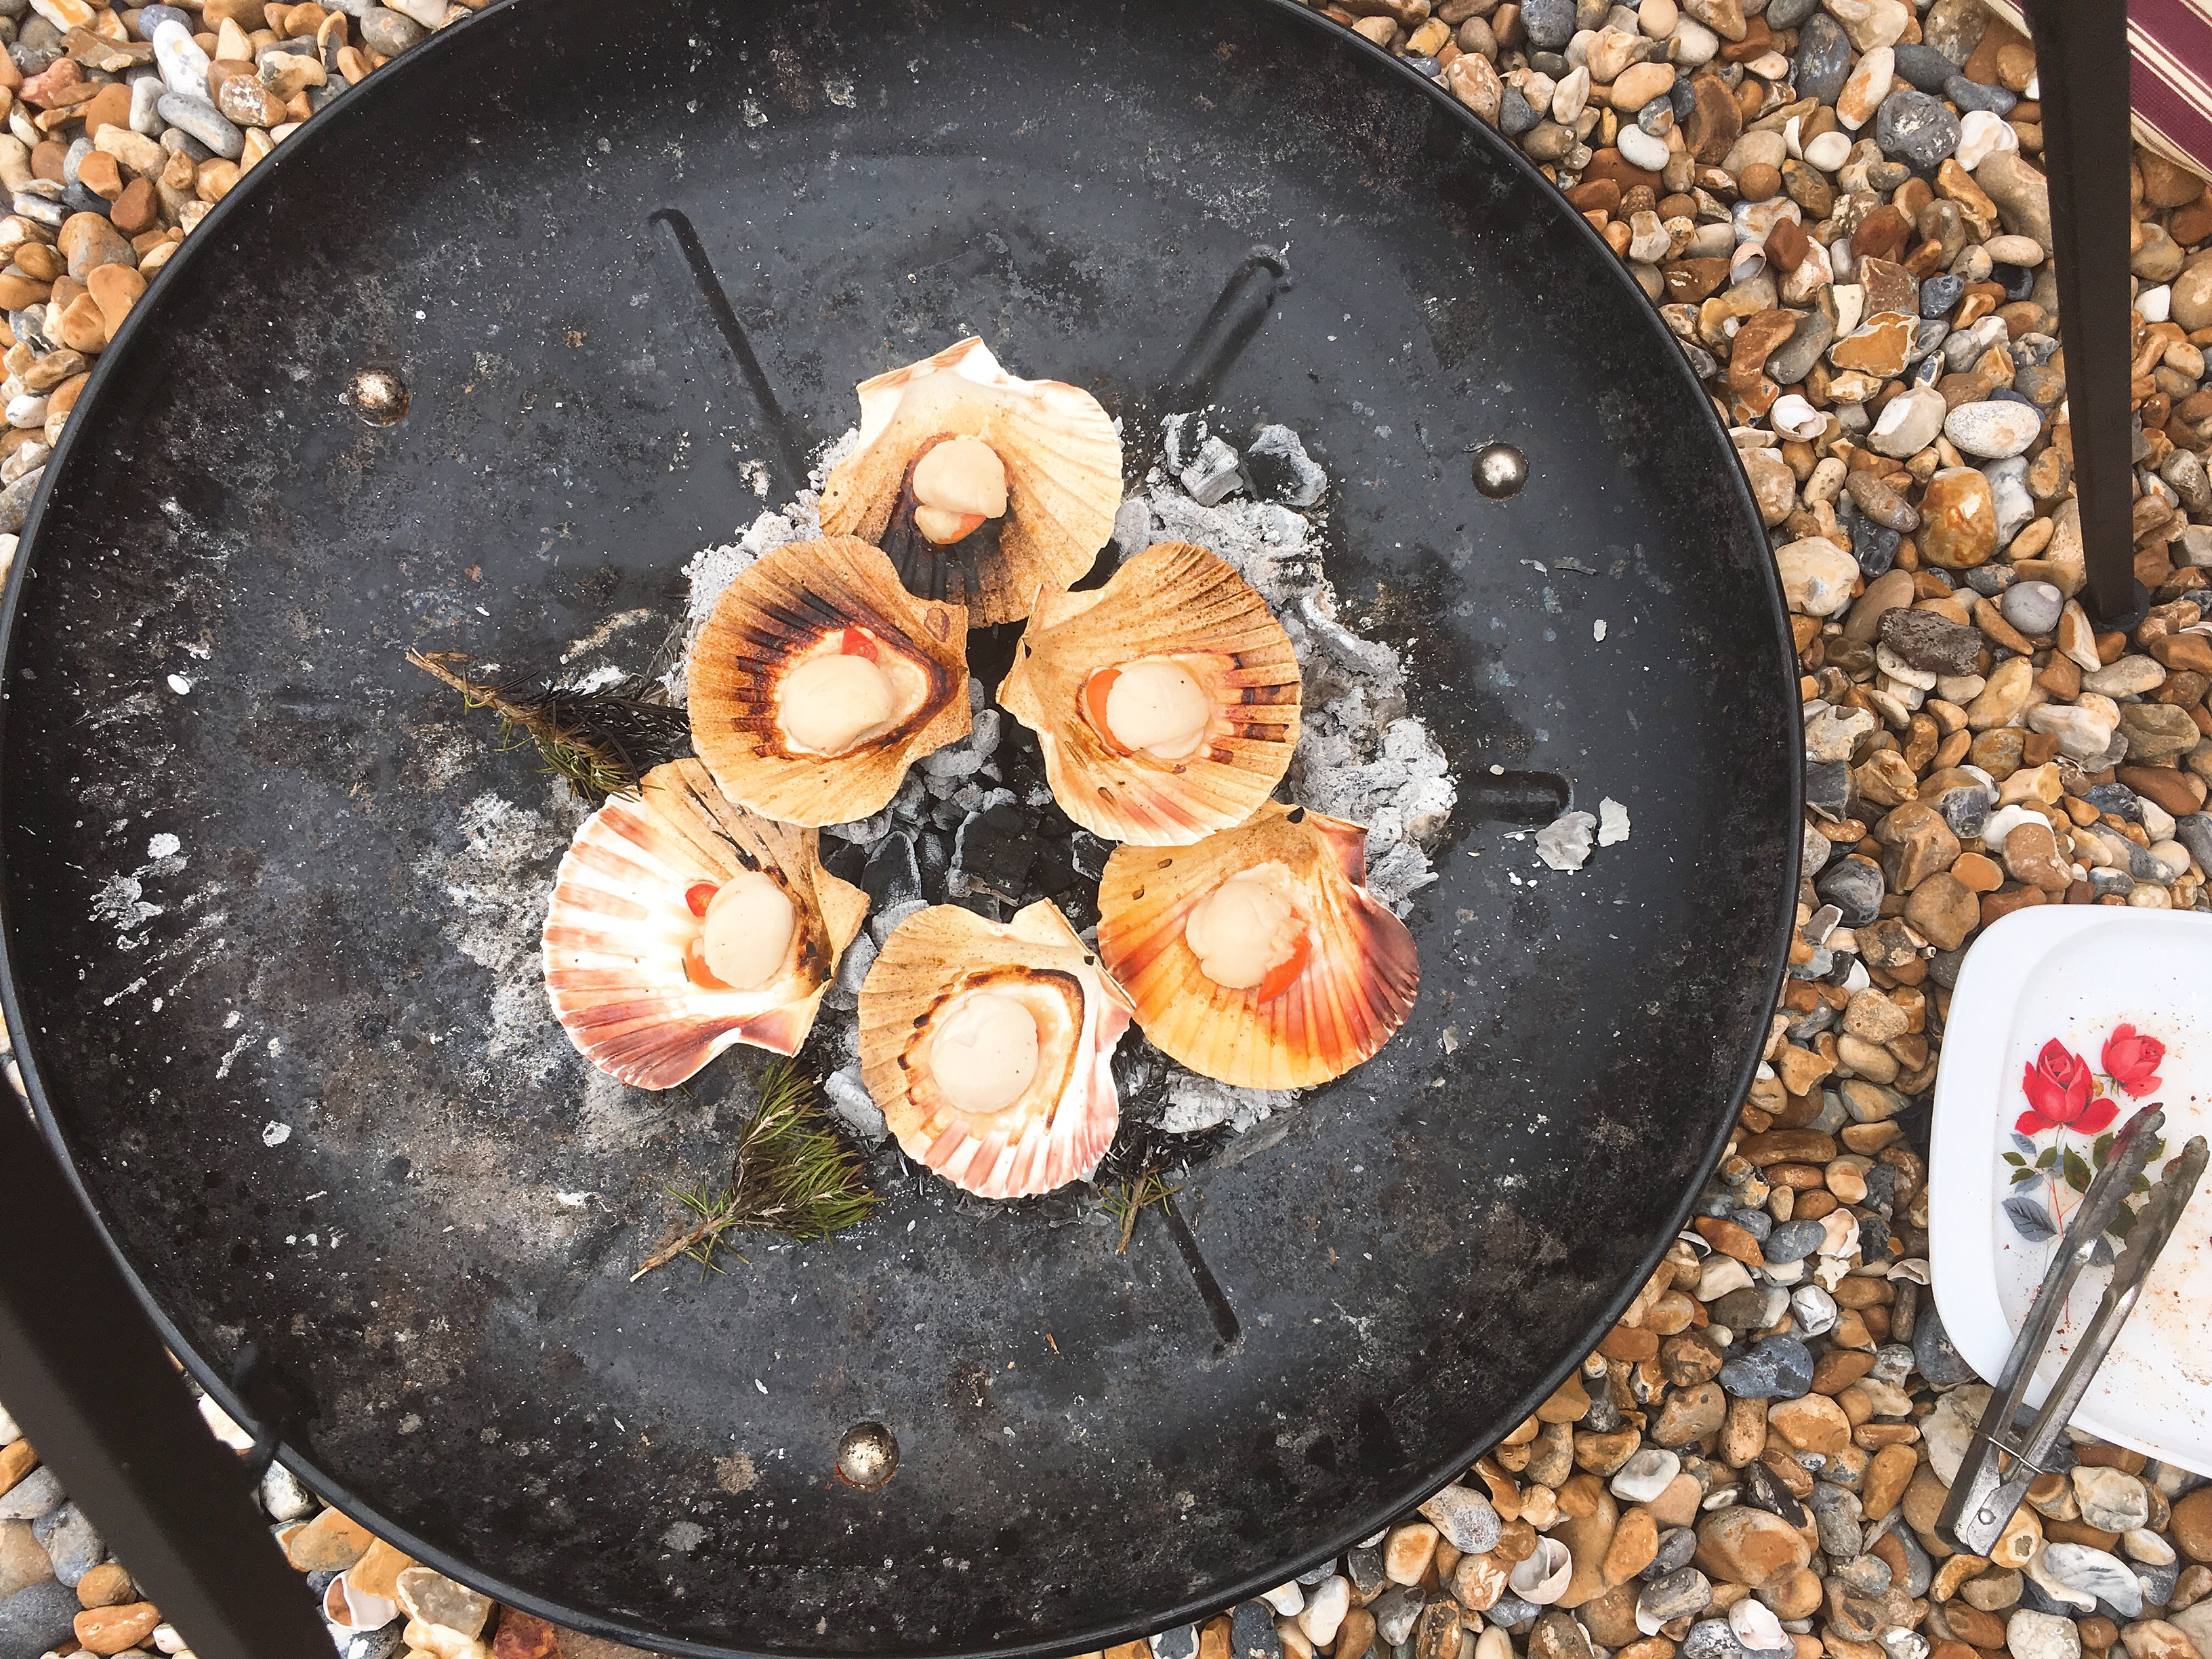 Beach Cooking: Scallops cooked on the fire by Beachhutcook